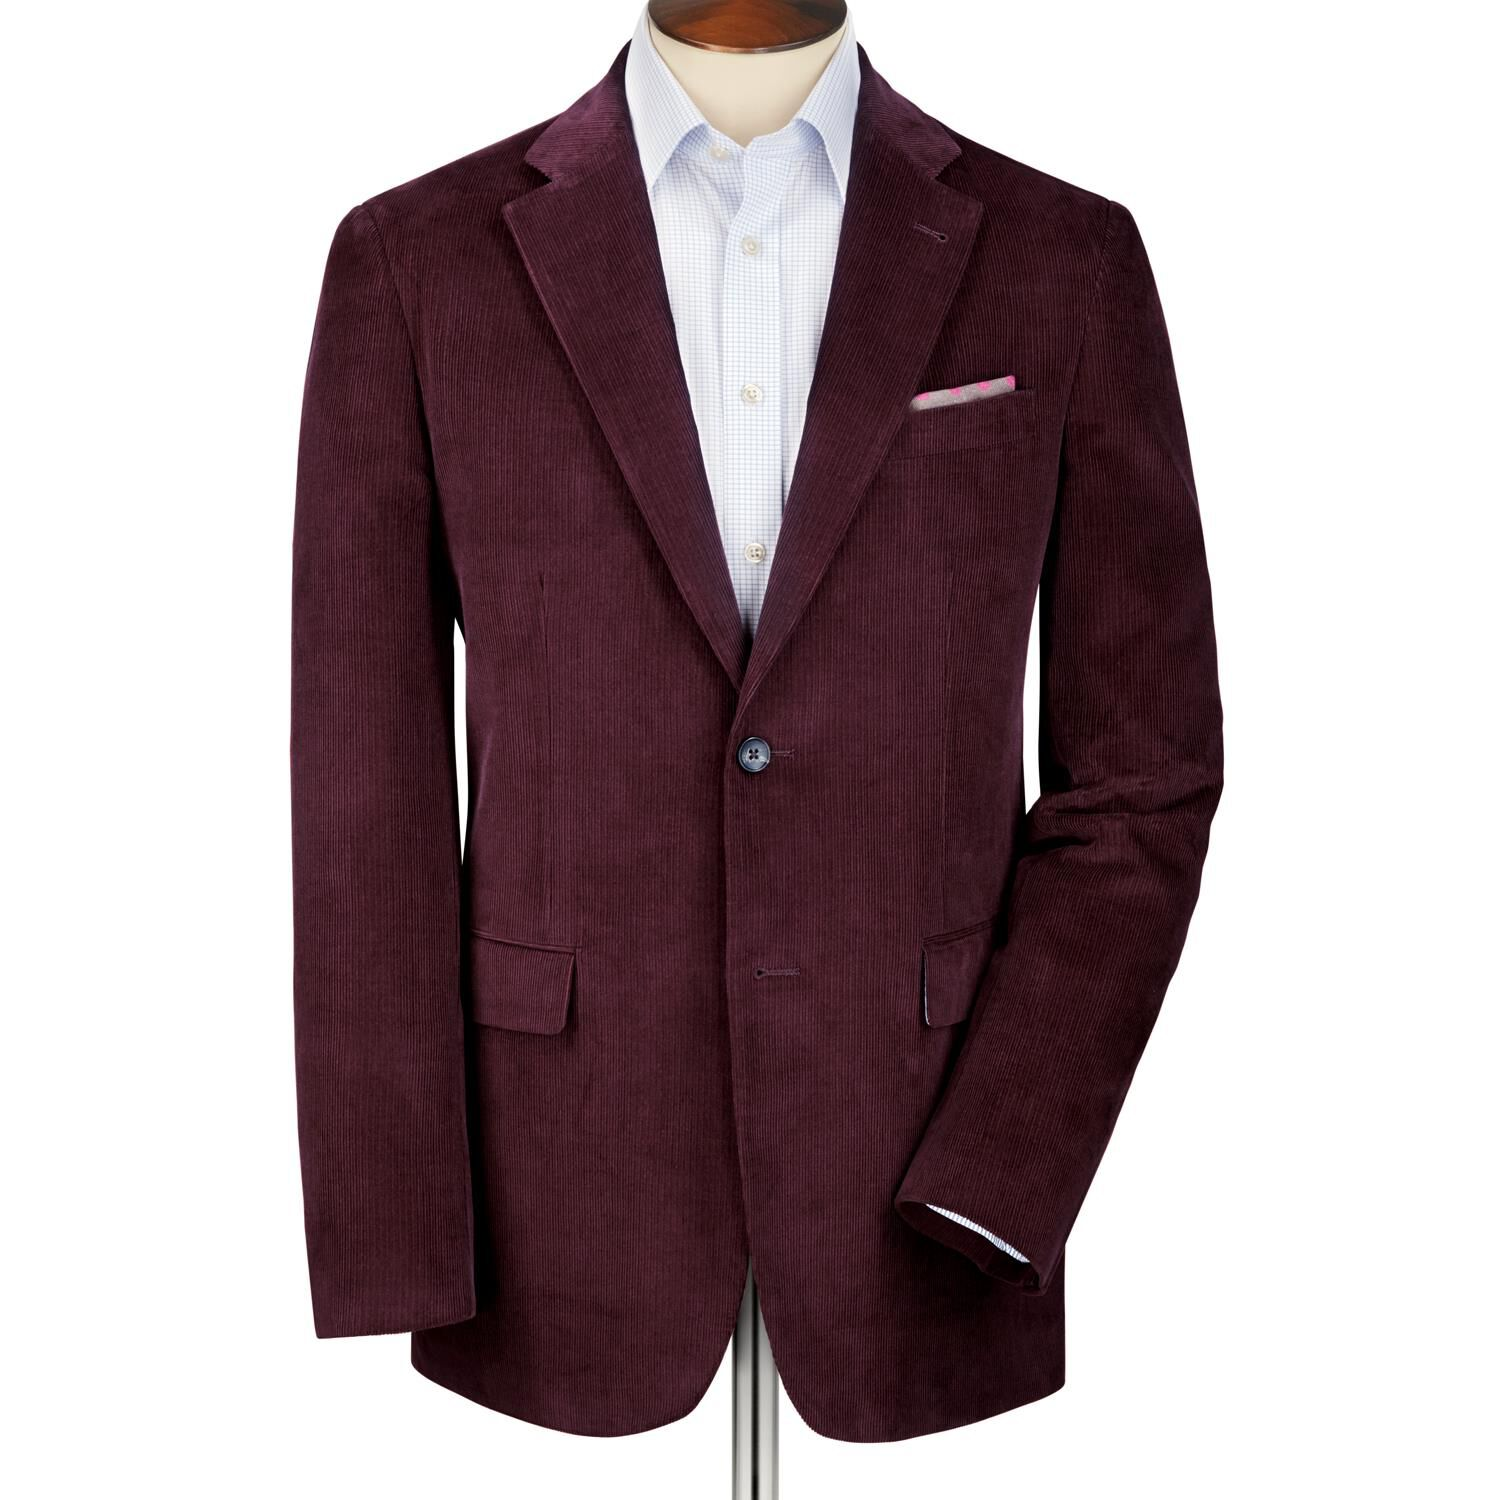 Grape Slim Fit Cord Unstructured Cotton Jacket Size 40 Regular by Charles Tyrwhitt